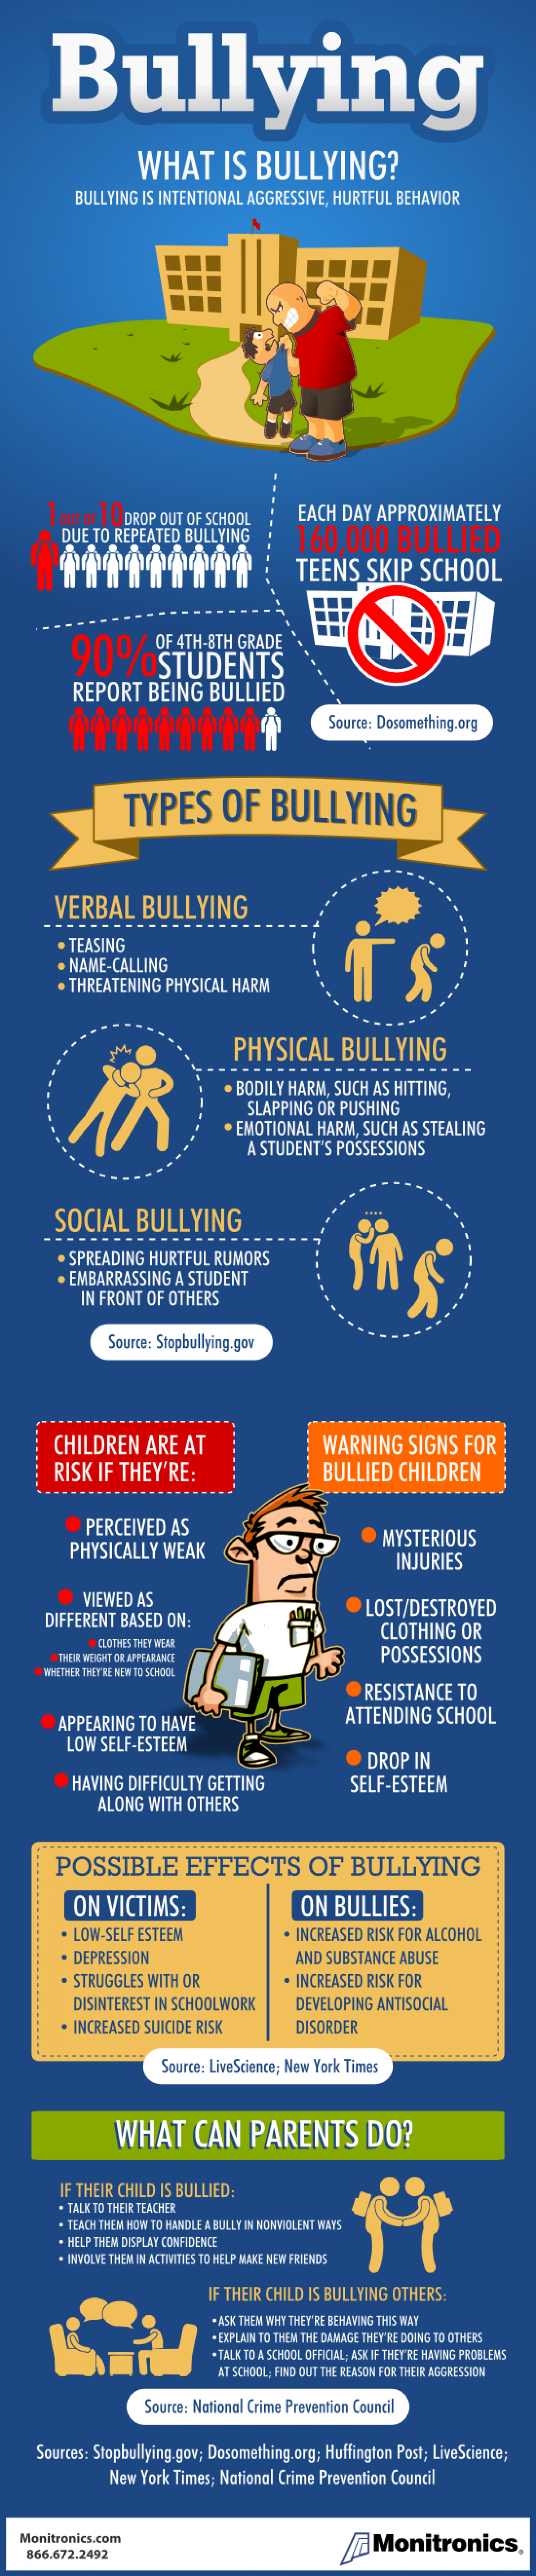 Bullying: What is Bullying? Infographic